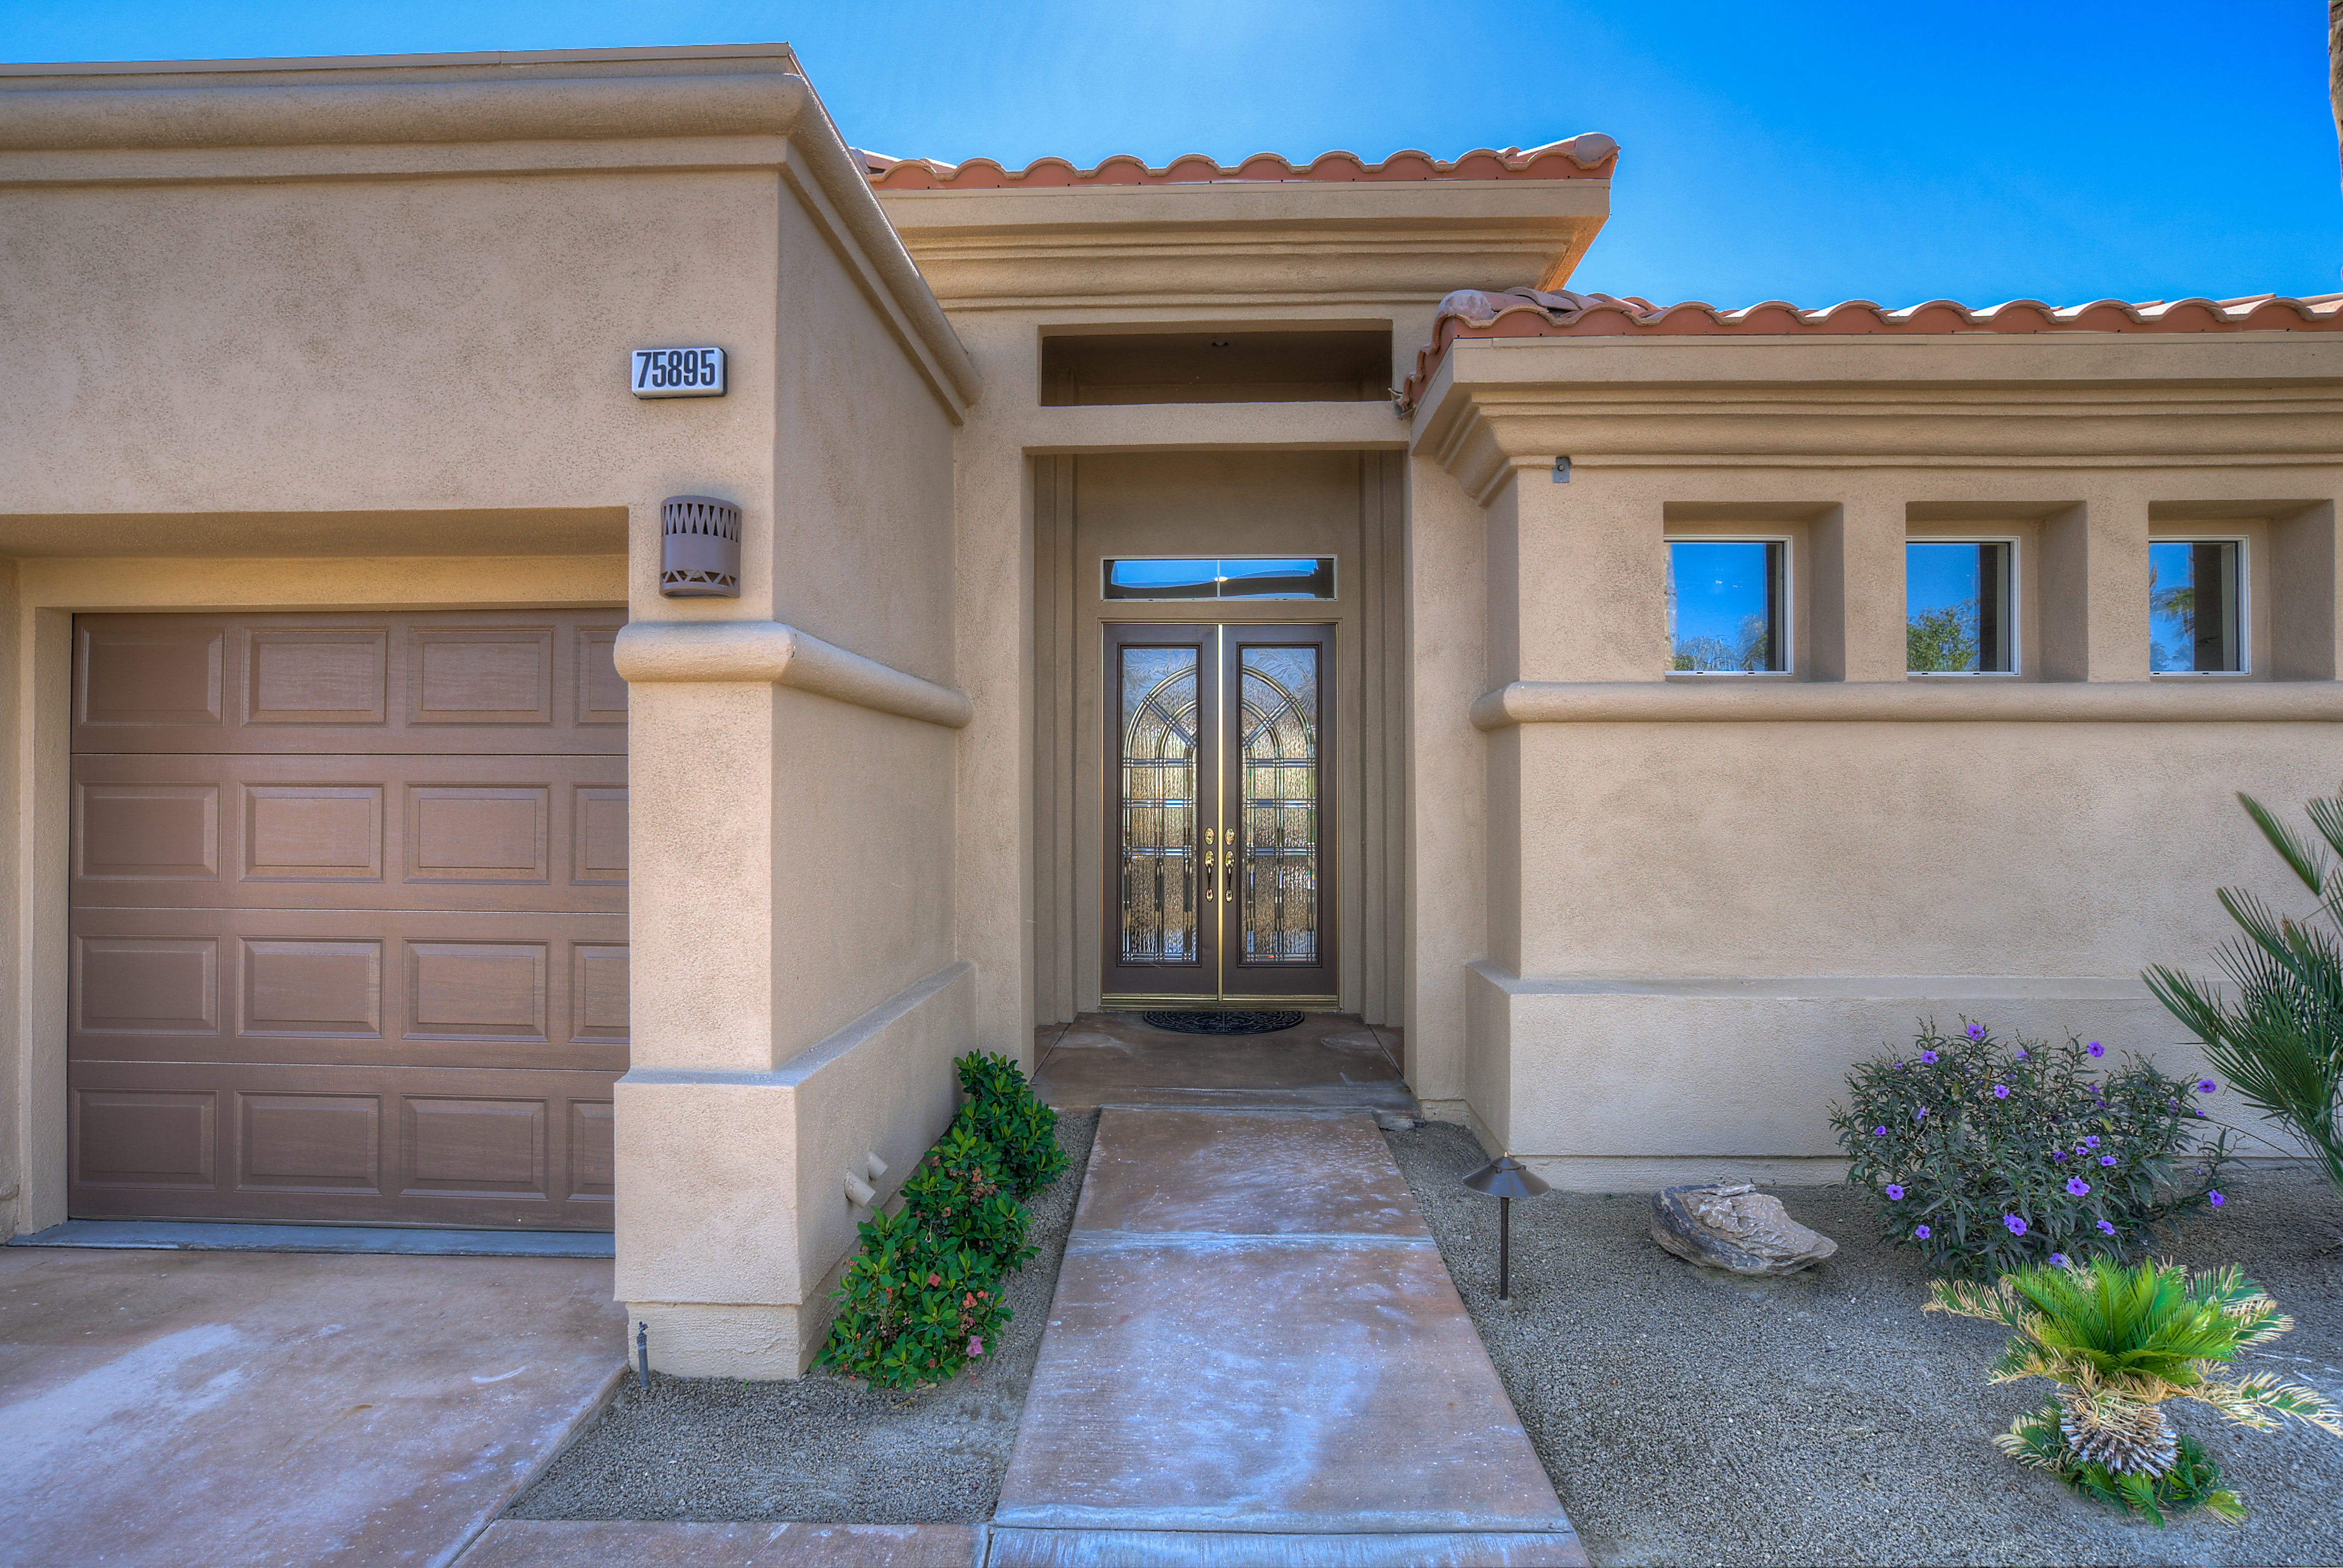 Michael Anthony Blog | 75895 Armour Wy